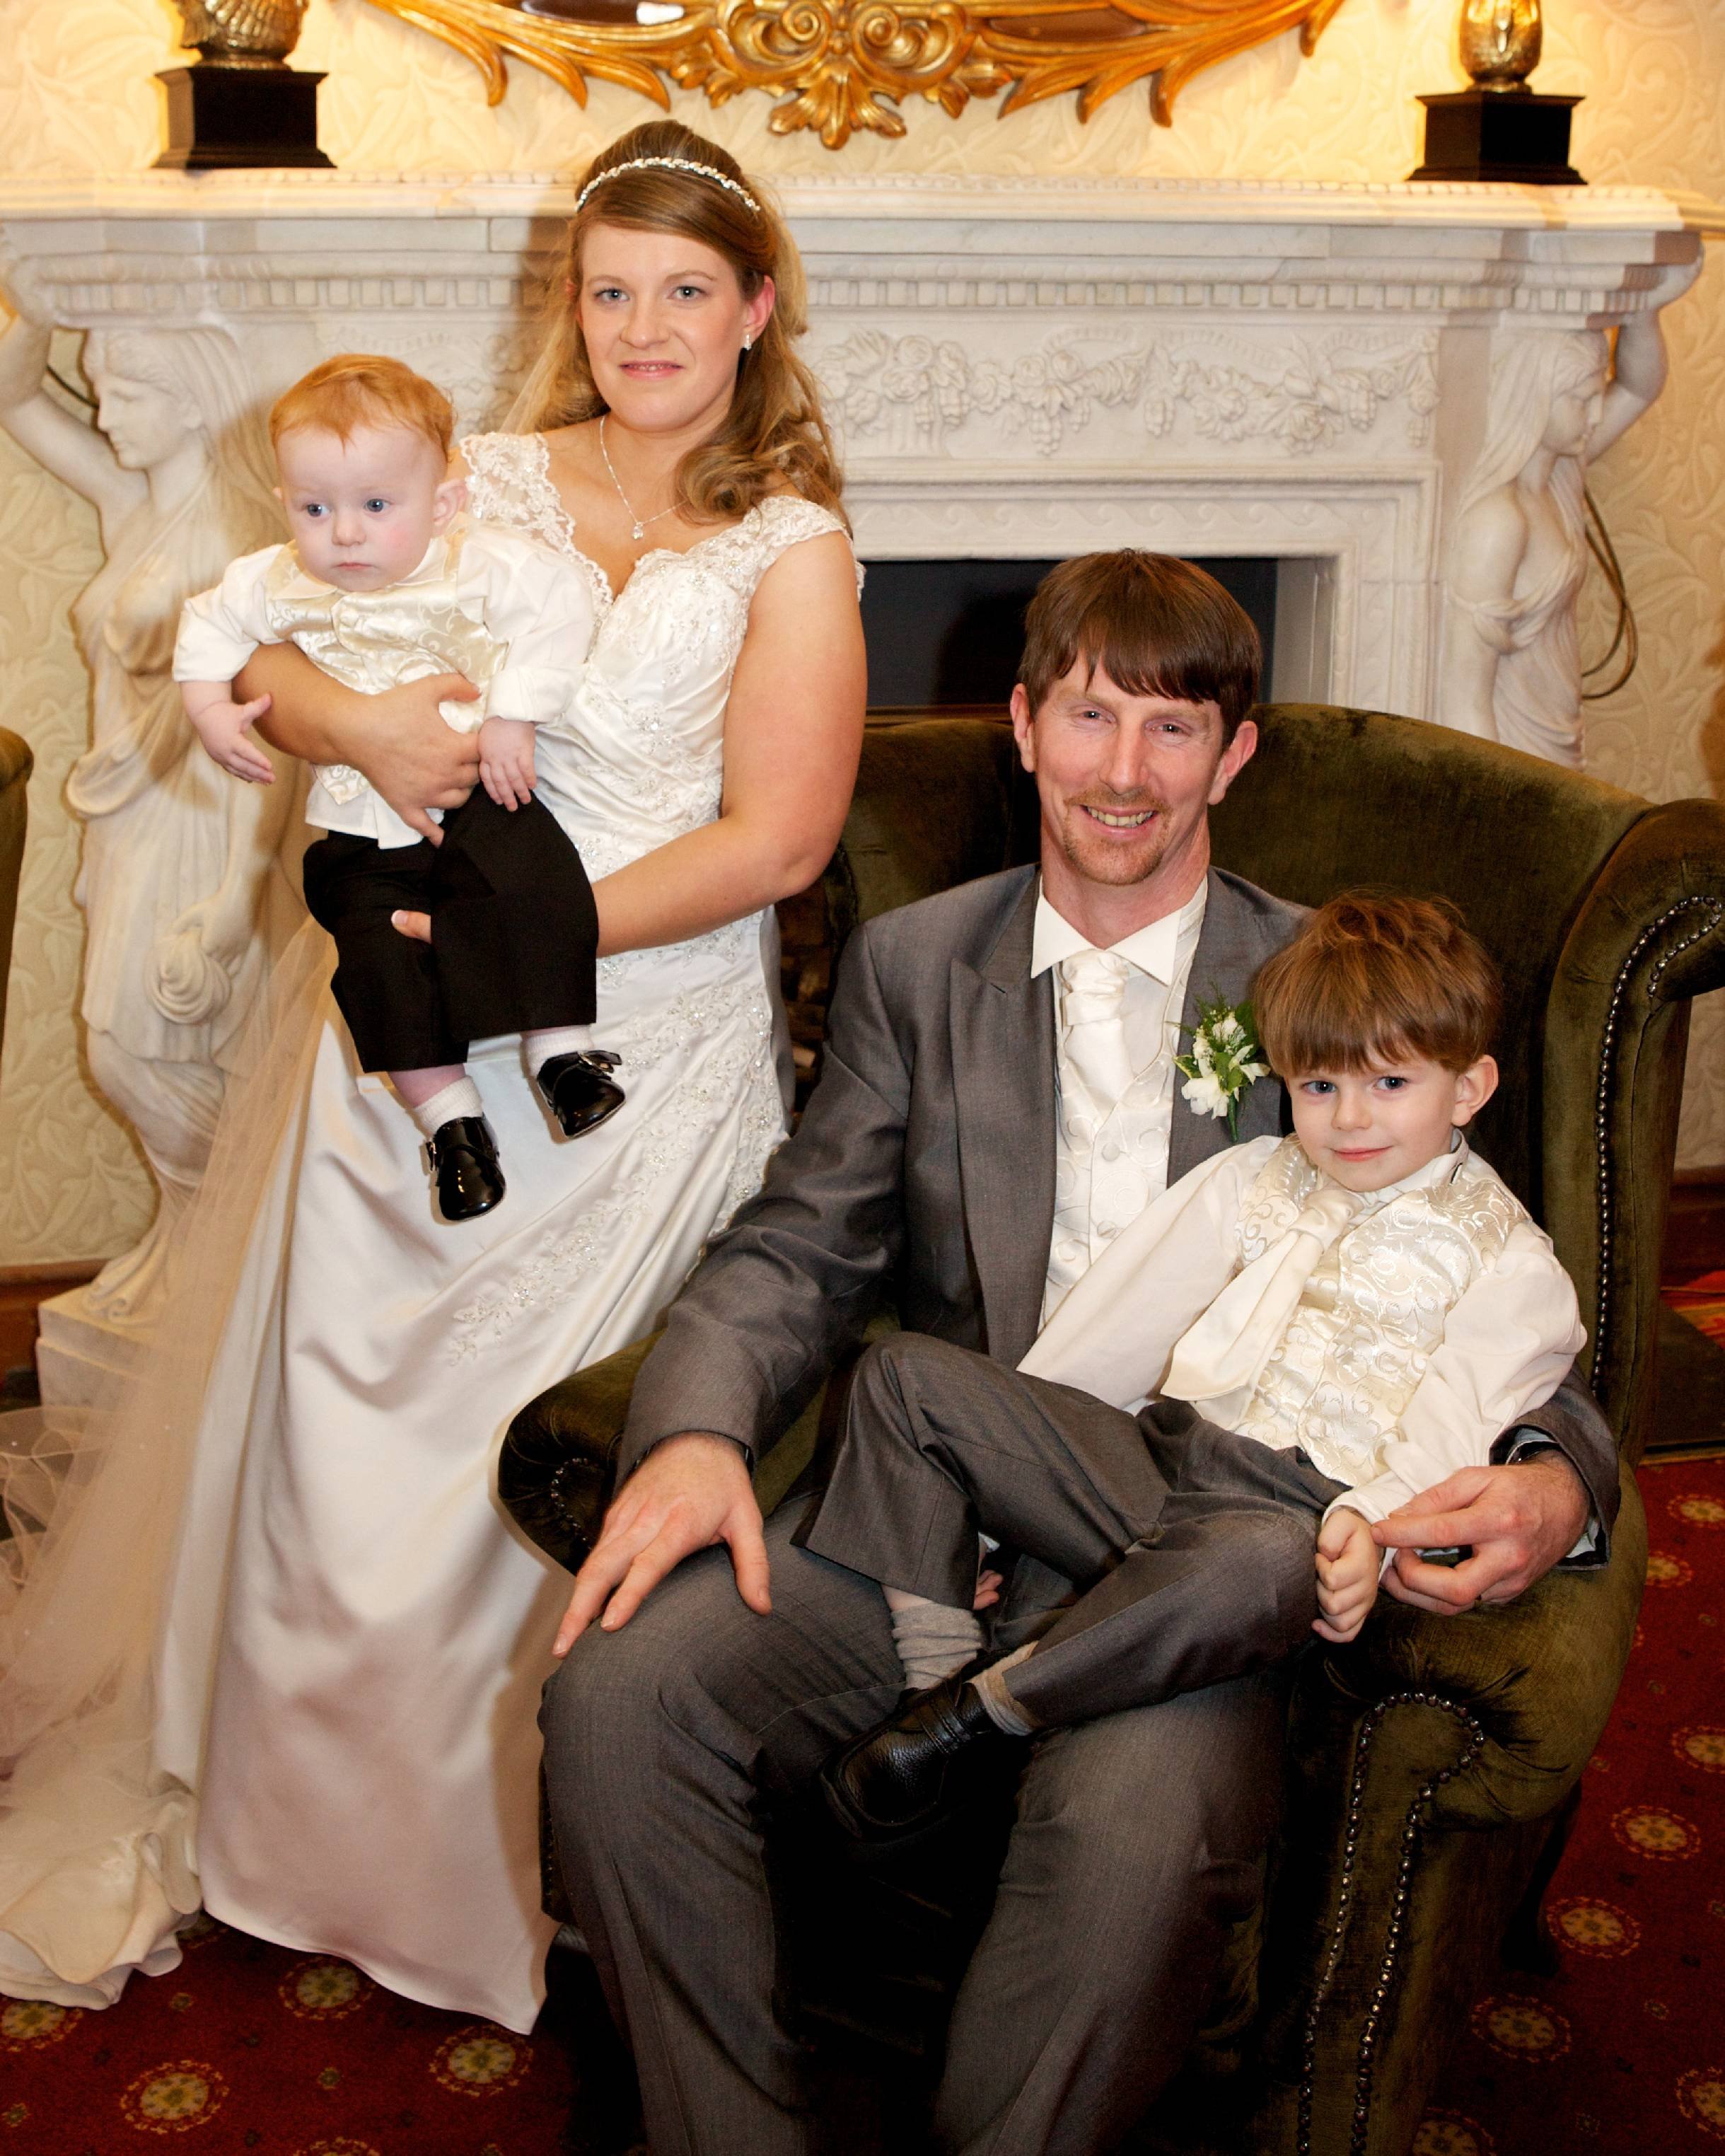 Pictured are Neil and Grainne Swinburne on their wedding day with their beautiful sons Fionn and Conal.